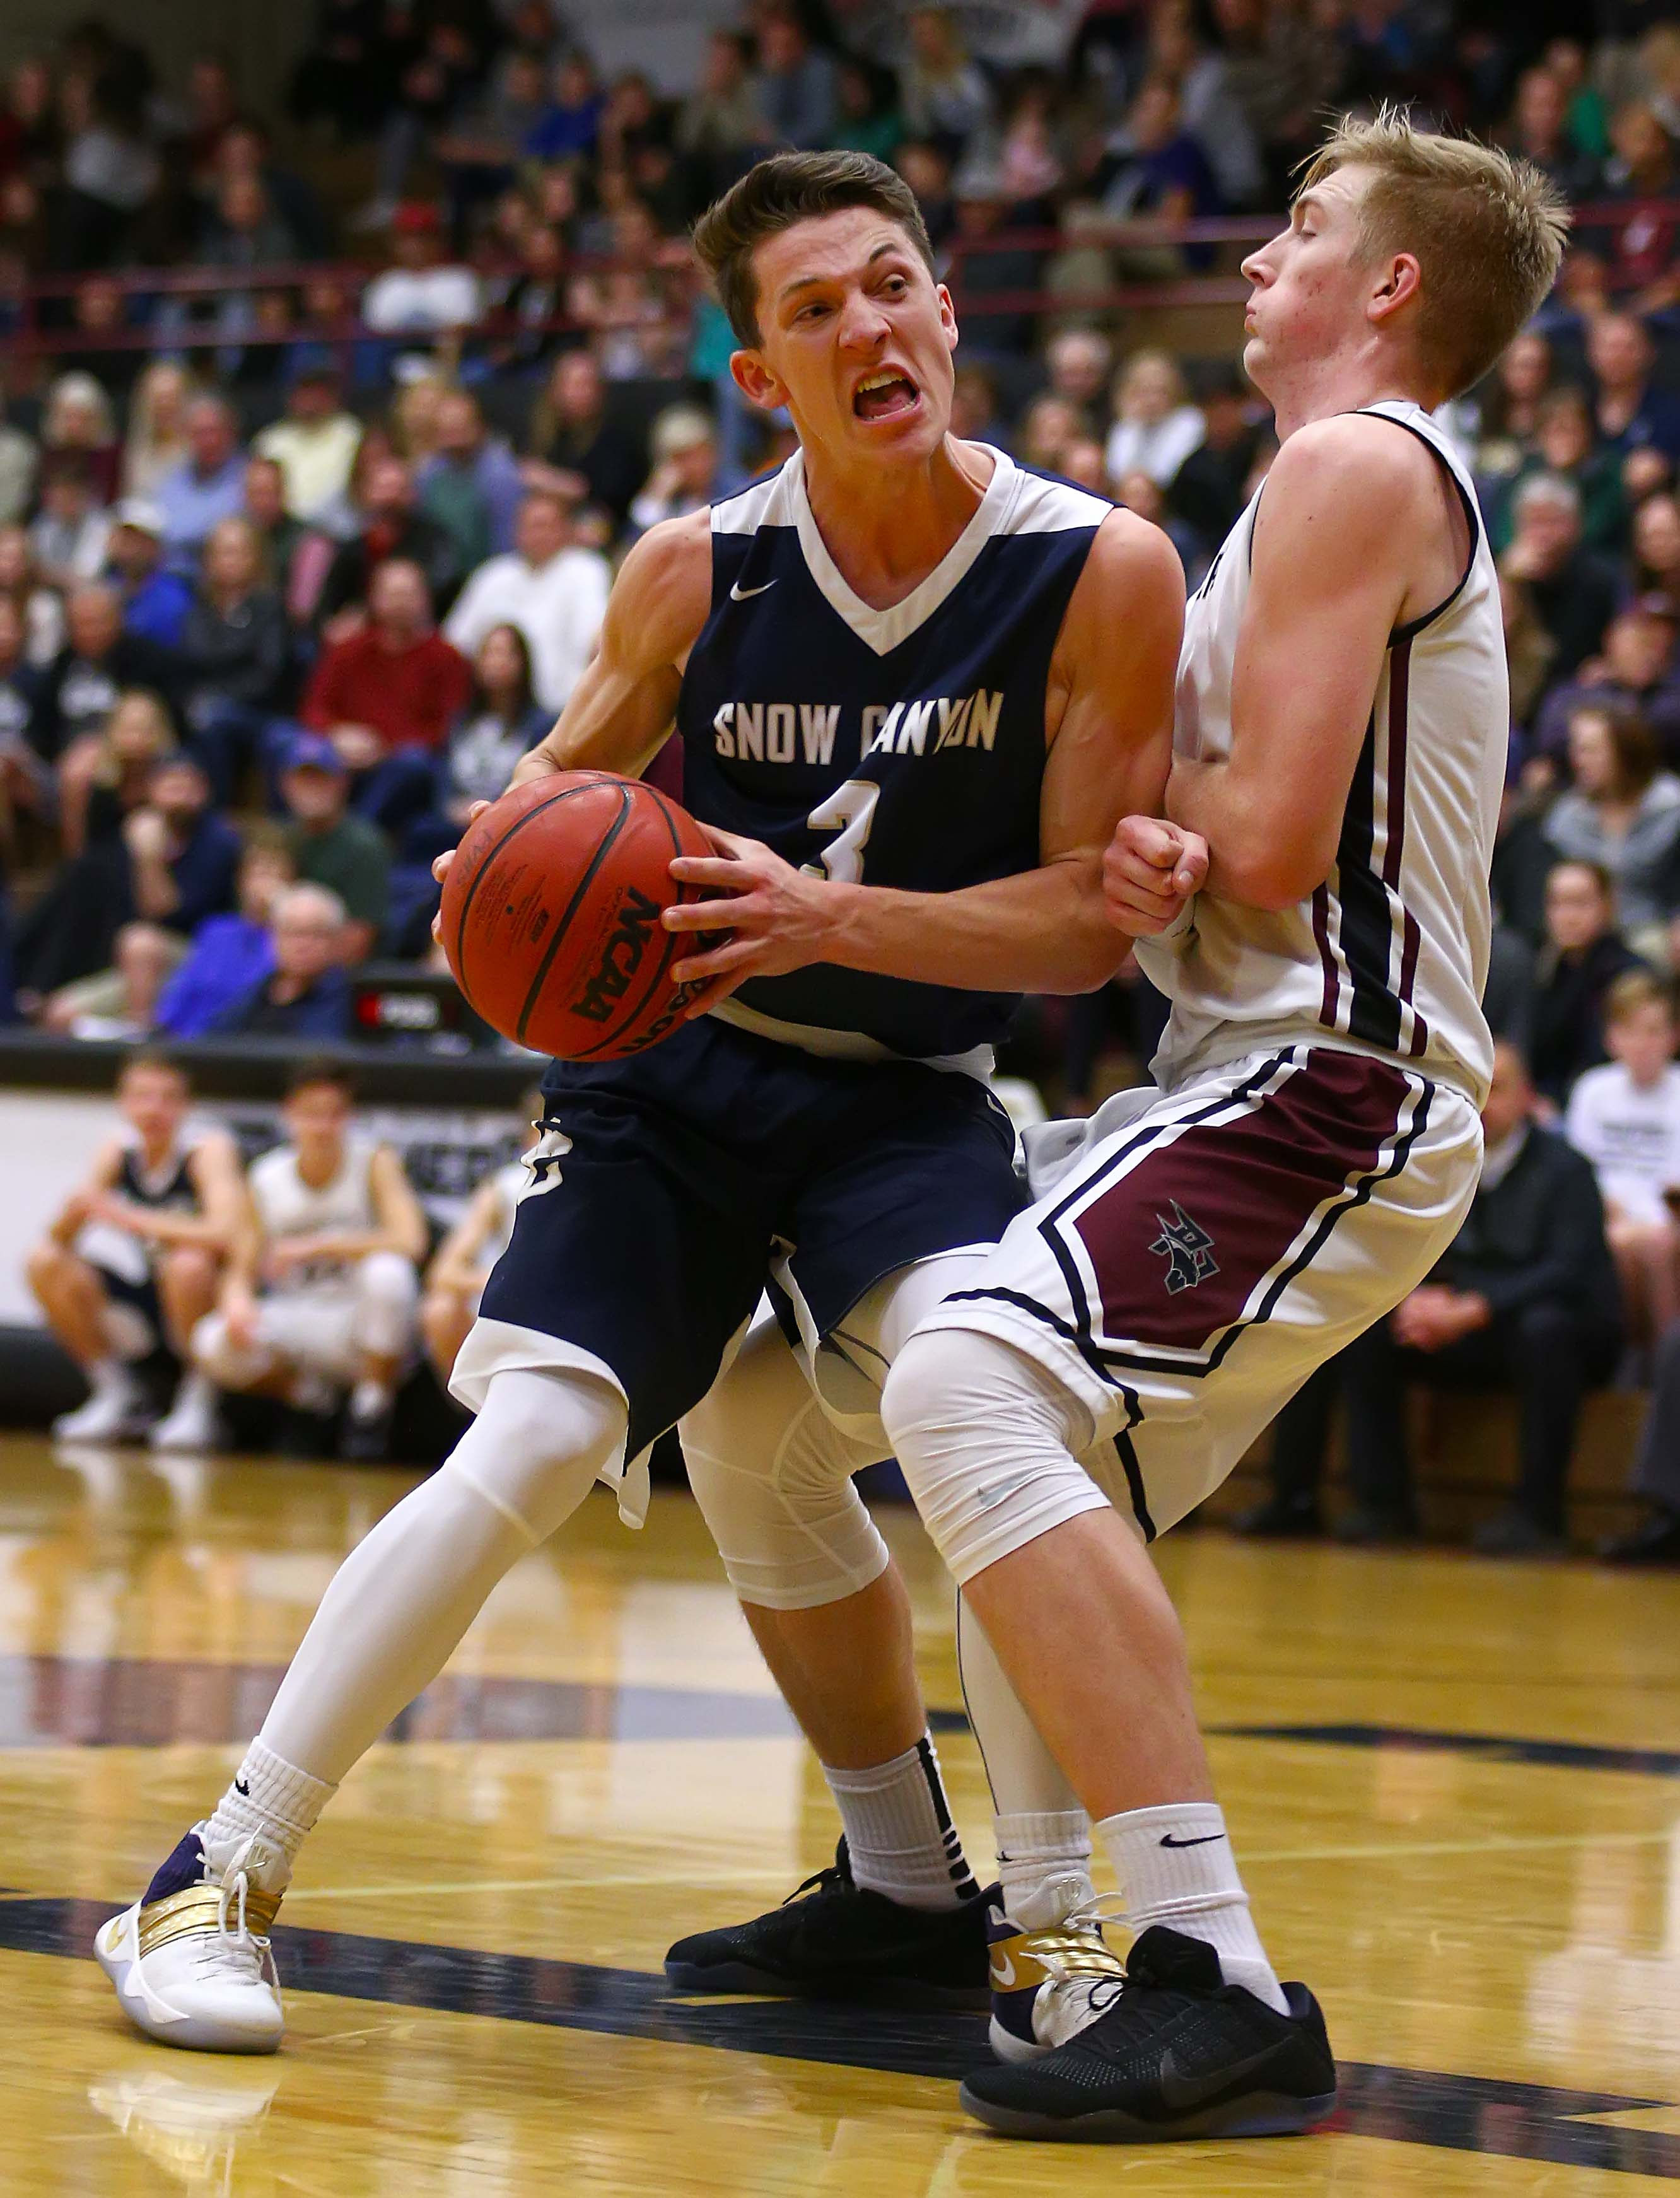 Snow Canyon's Braden Baker (3) and Pine View's Trey Farrer (5), Pine View vs. Snow Canyon, Boys Basketball, St. George, Utah, Jan. 11, 2017, | Photo by Robert Hoppie, ASPpix.com, St. George News